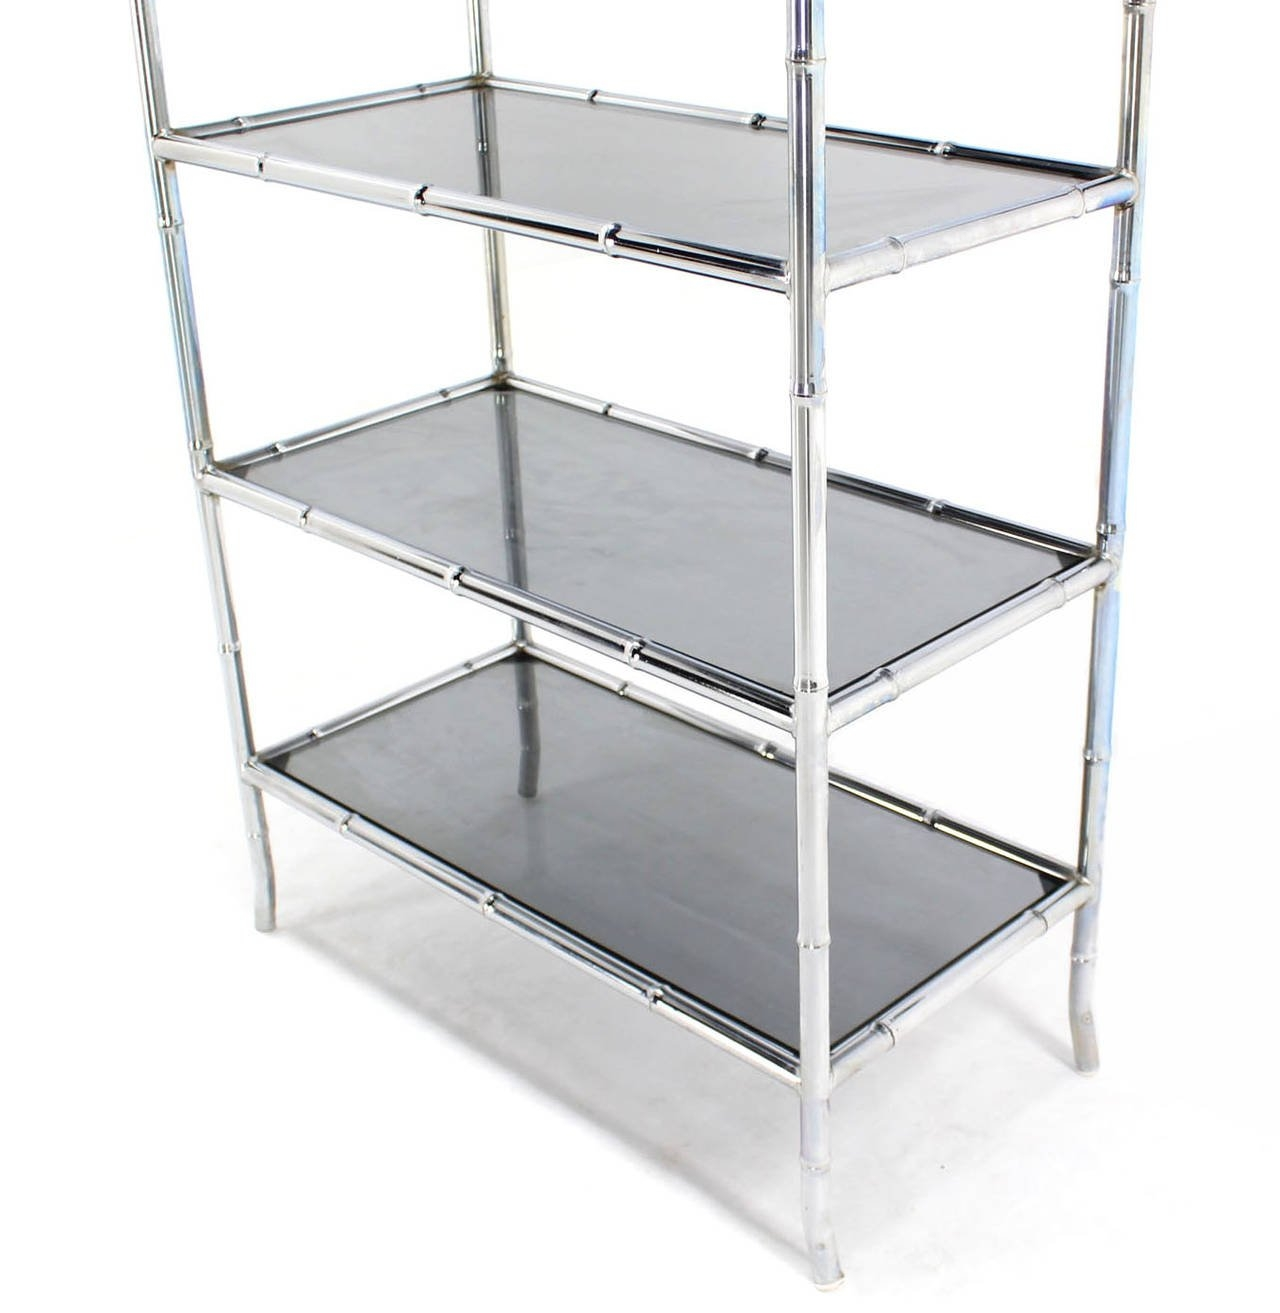 Chrome Faux Bamboo Etagere Unit With Smoked Glass Shelves At 1stdibs Throughout Smoked Glass Shelf (#2 of 12)